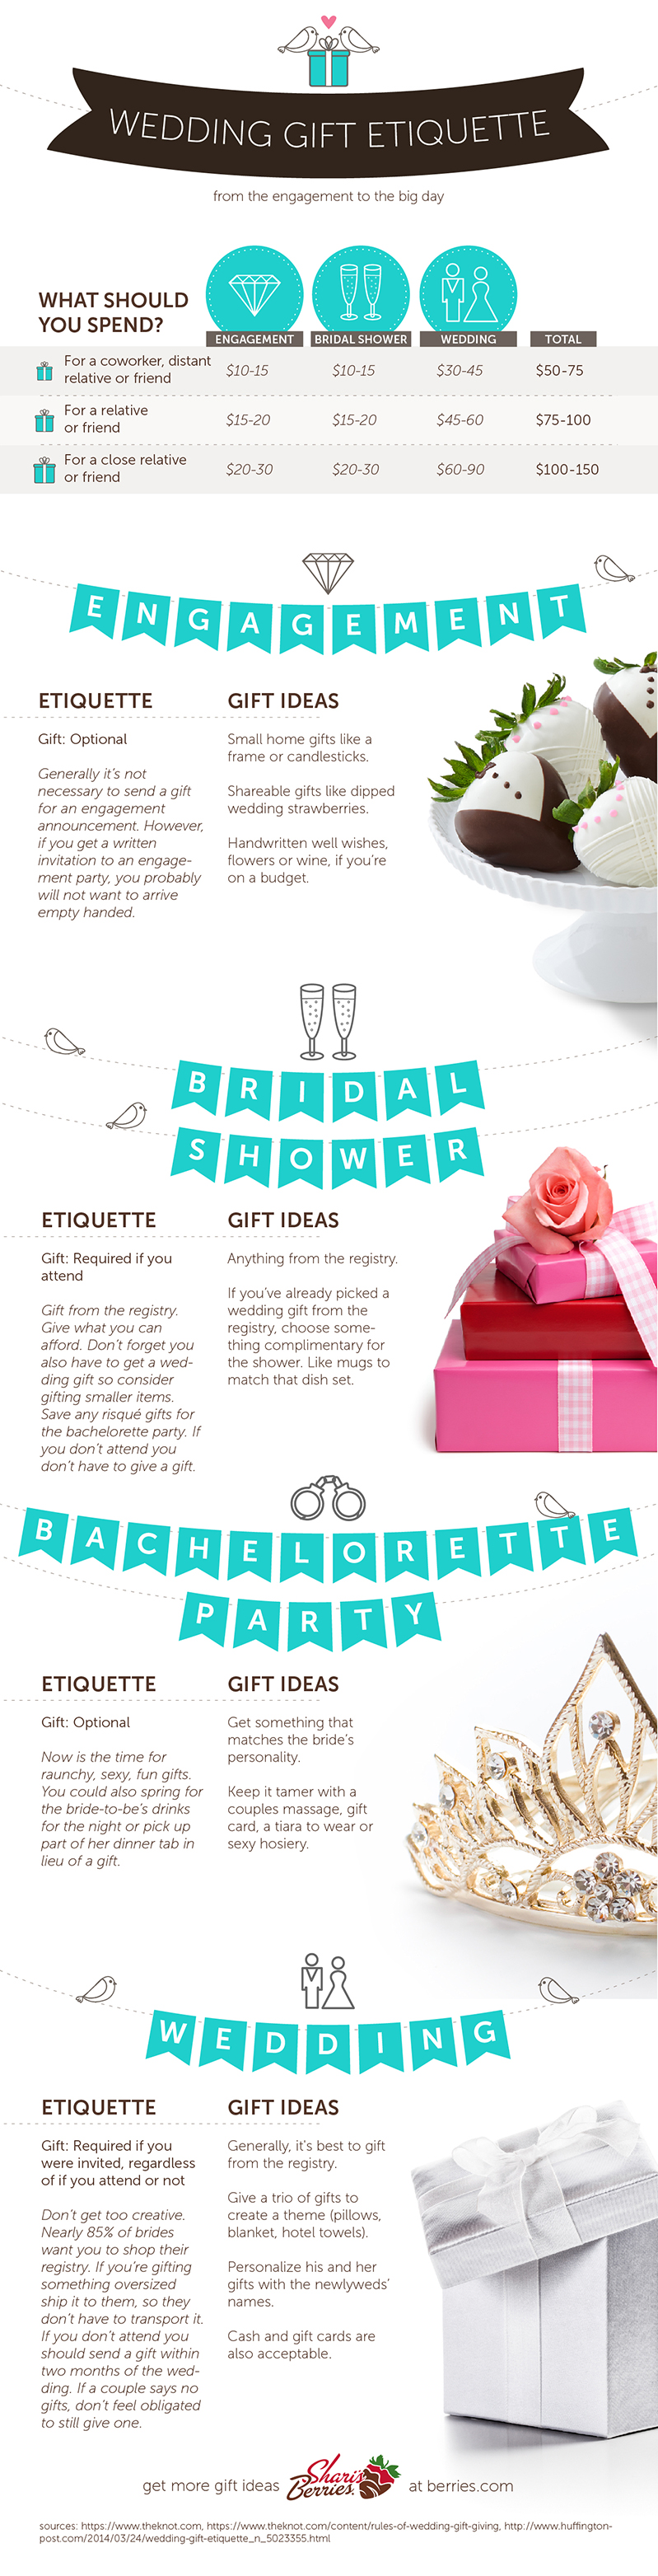 Wedding Gift Etiquette How Much Money : Wedding Gift EtiquetteSharis Berries